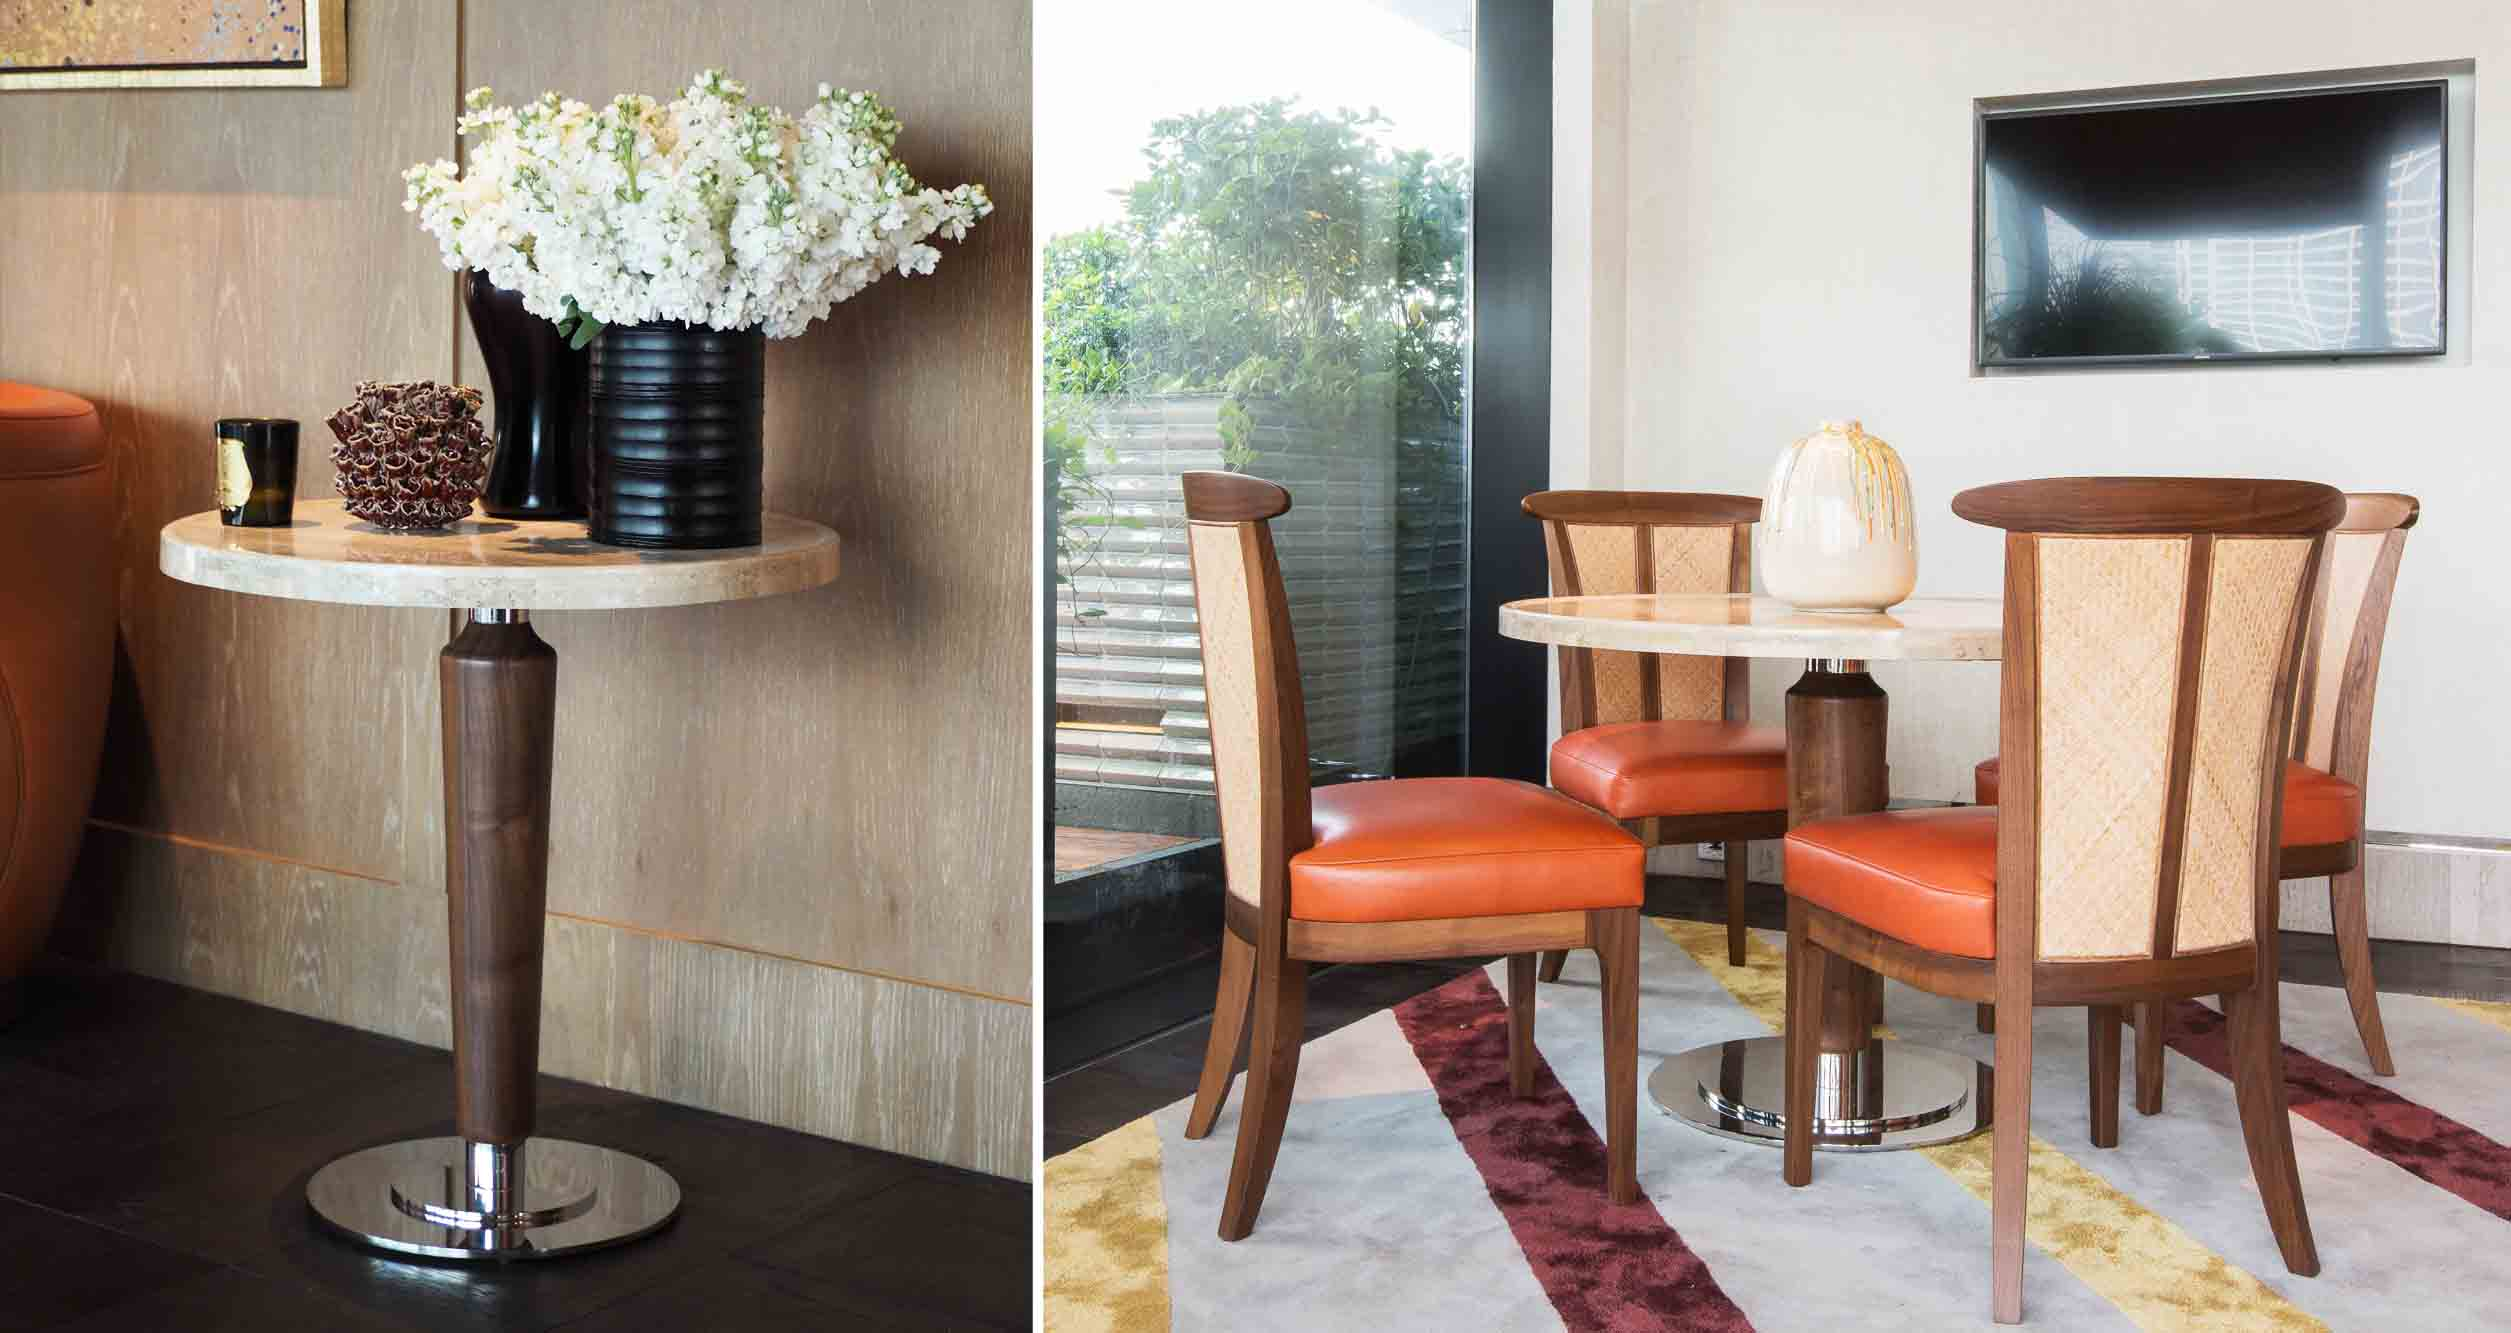 The Ritz Carlton Residences MahaNakhon David Collins x Decca round table with marble top